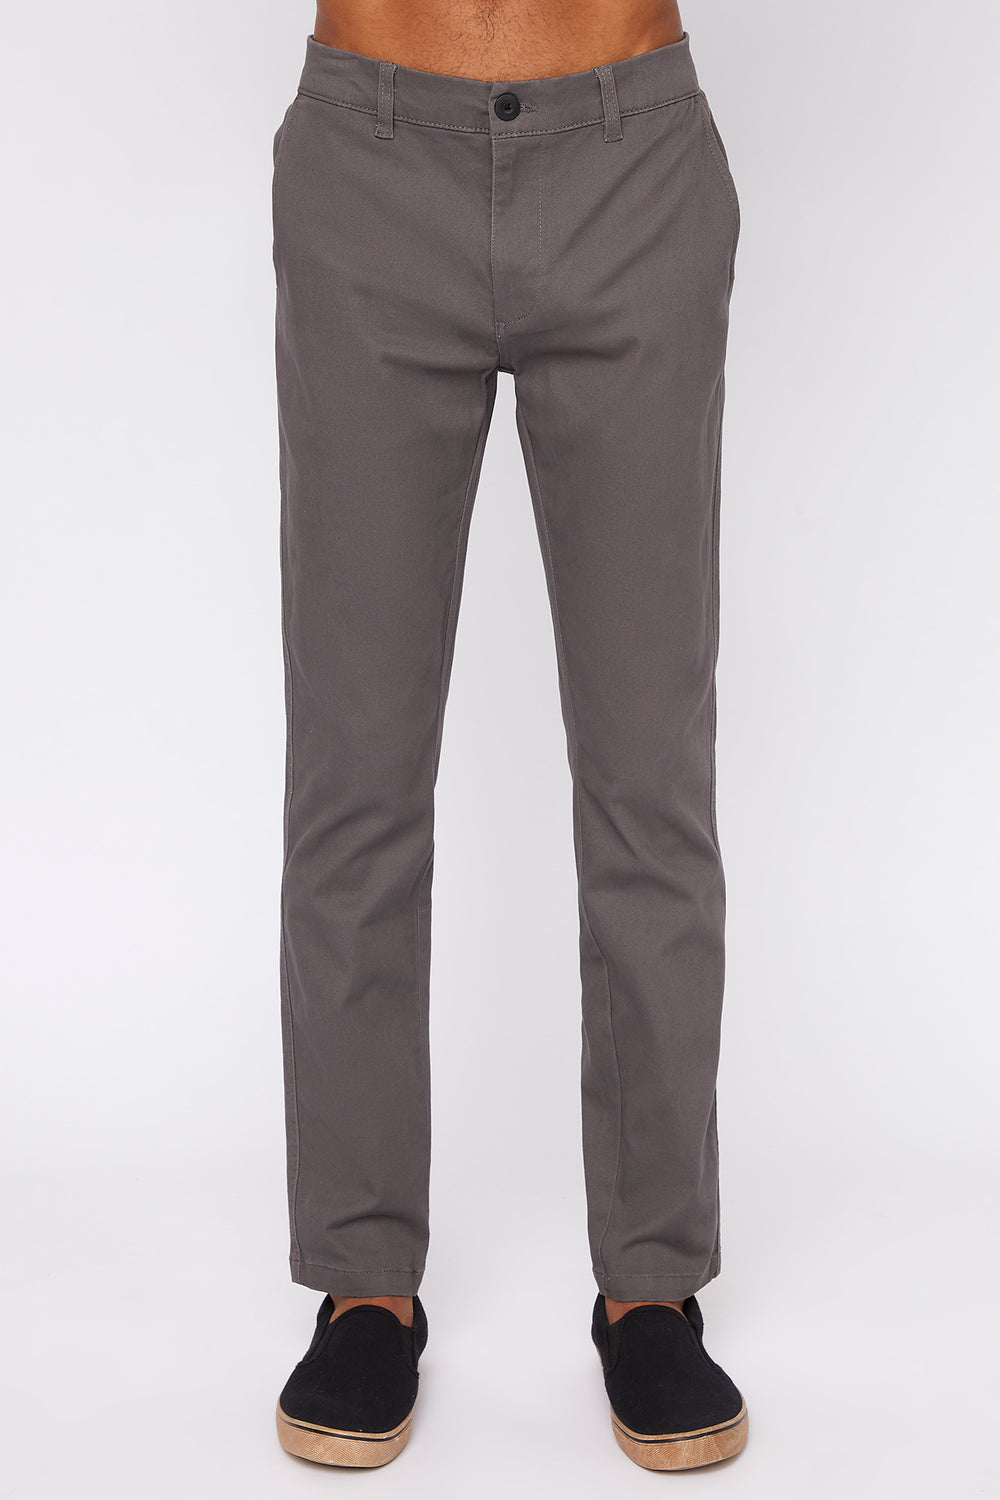 Pantalon Chino West49 Homme Gris fonce